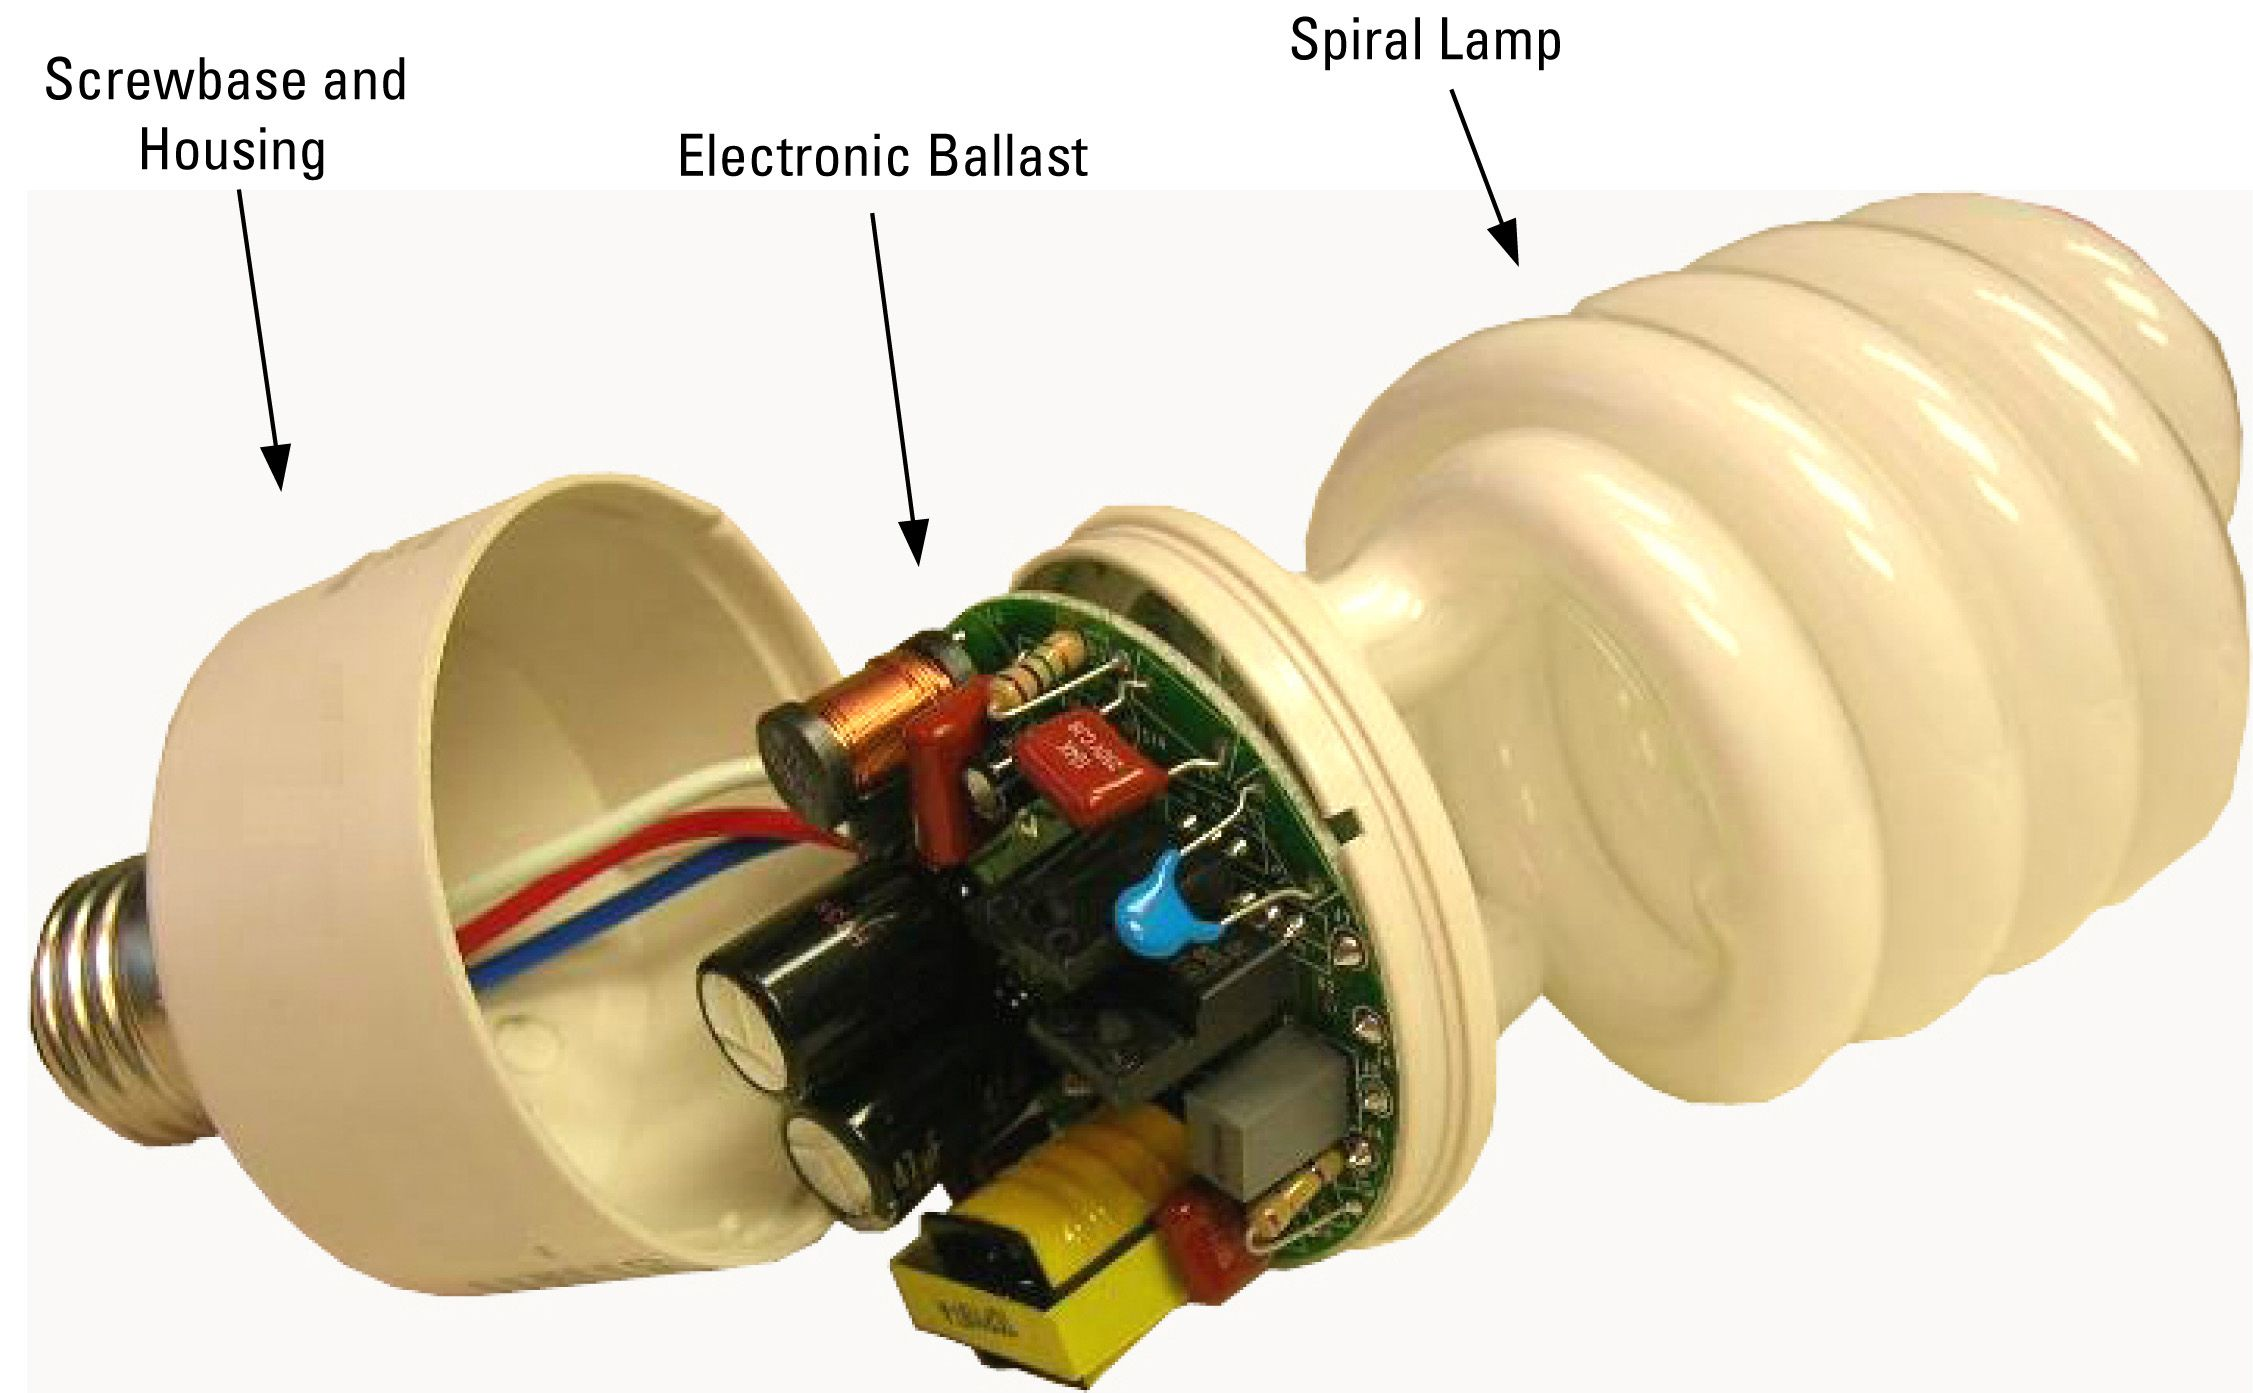 Cfl components and assembly knowledge pinterest electronics white fluorescent energy saver lamp parts electrical engineering pics white fluorescent energy saver lamp parts aloadofball Choice Image